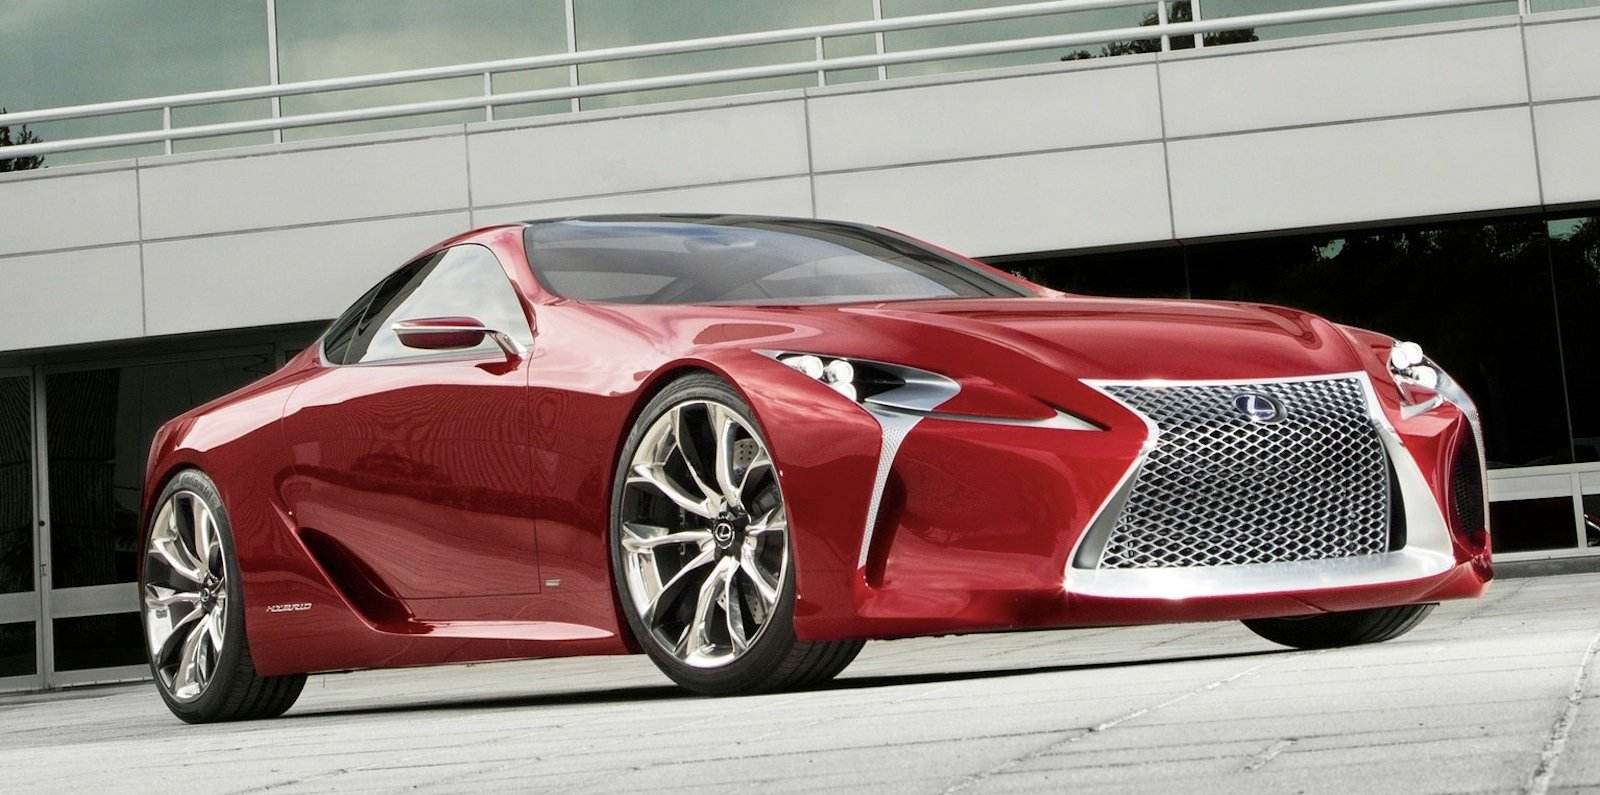 lexus lf-lc: concept to become production reality2015 - photos